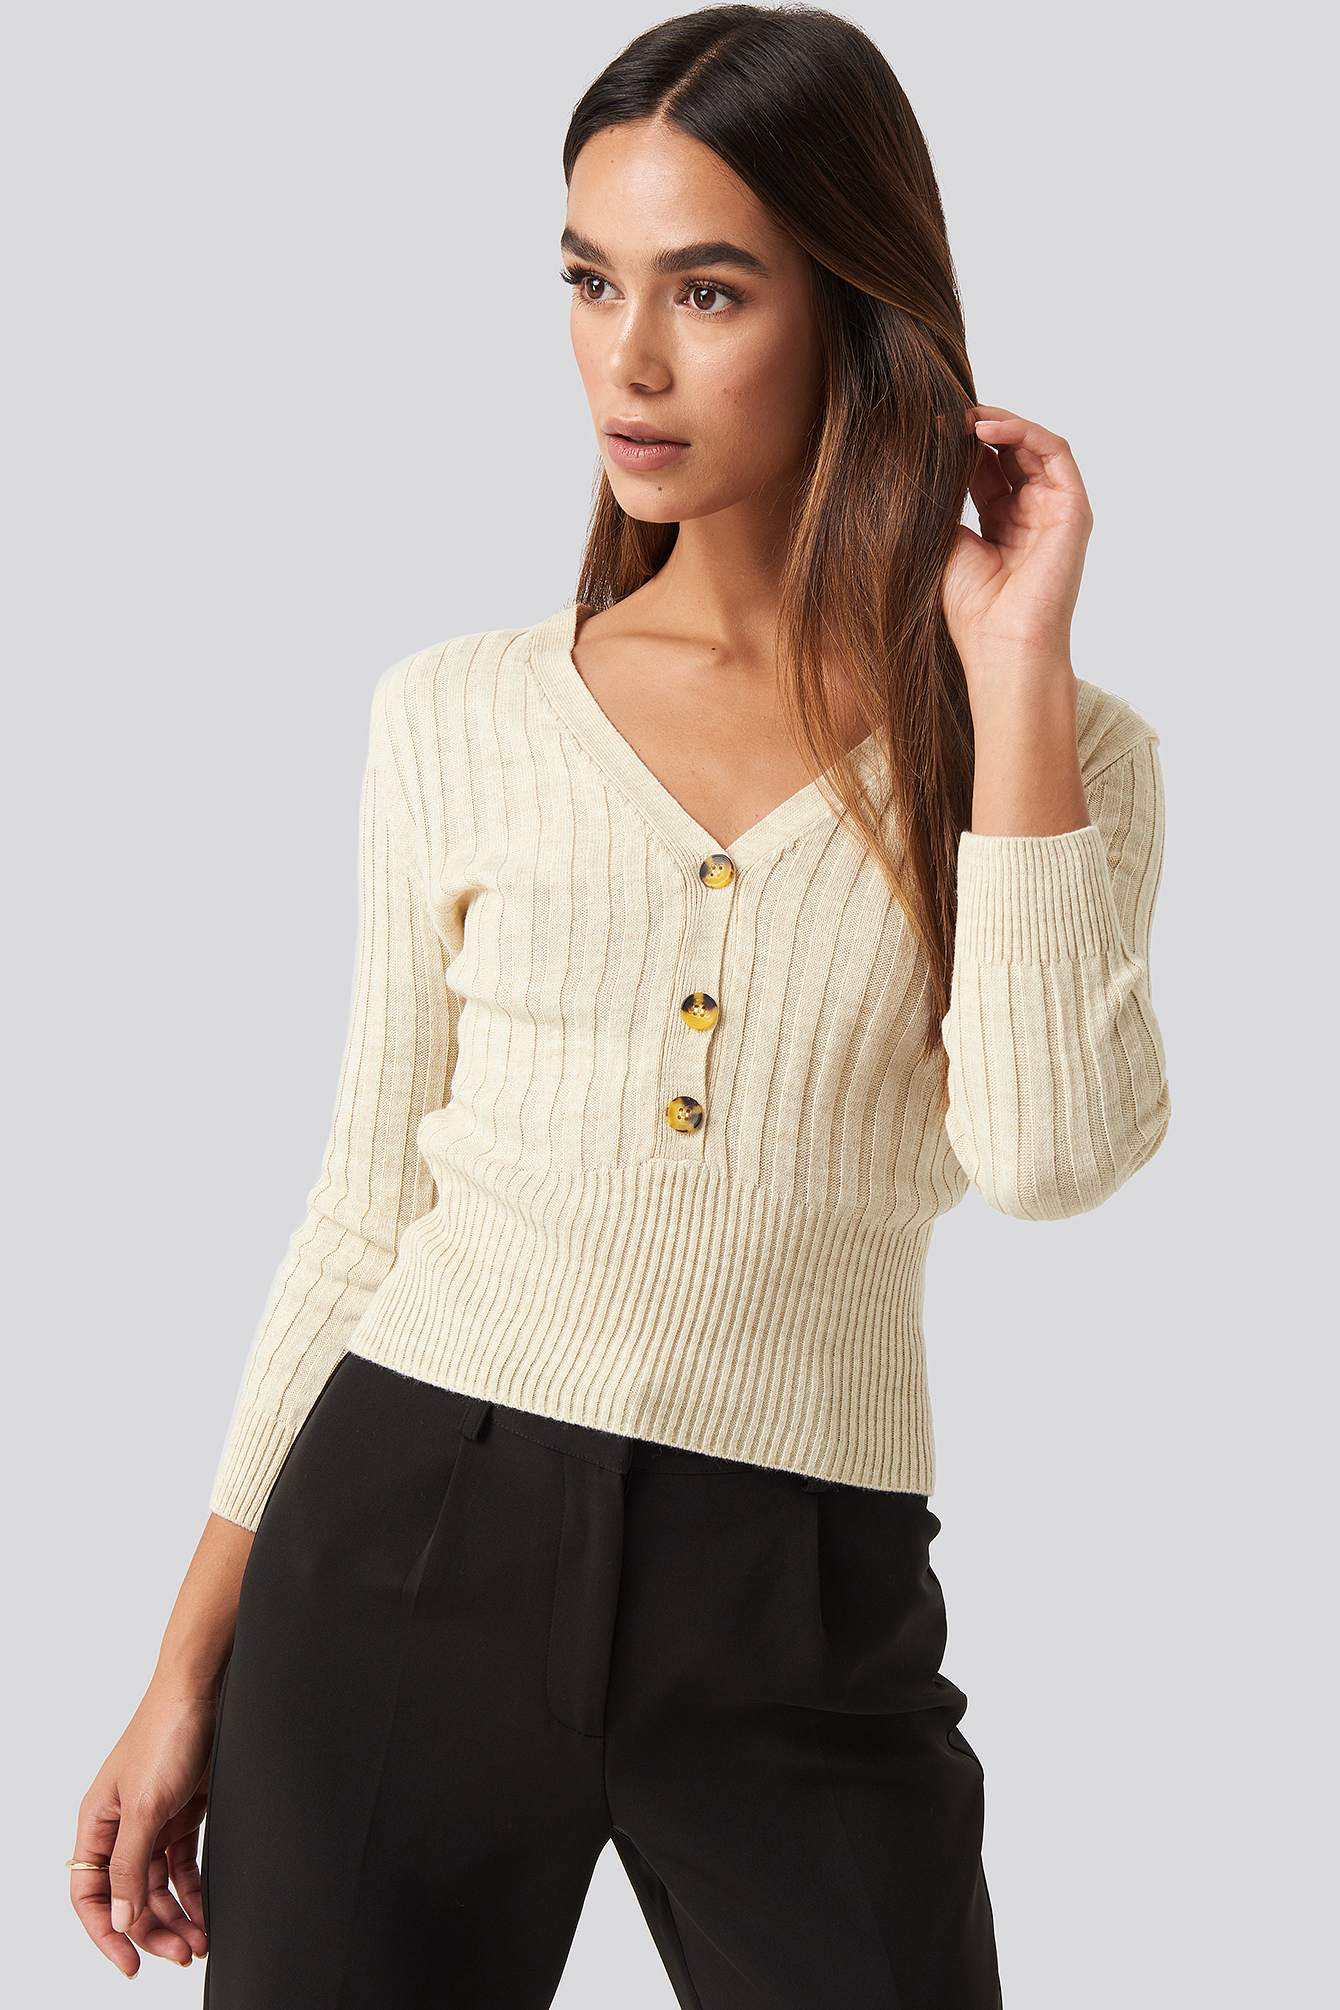 mango -  Ribetto Sweater - Beige